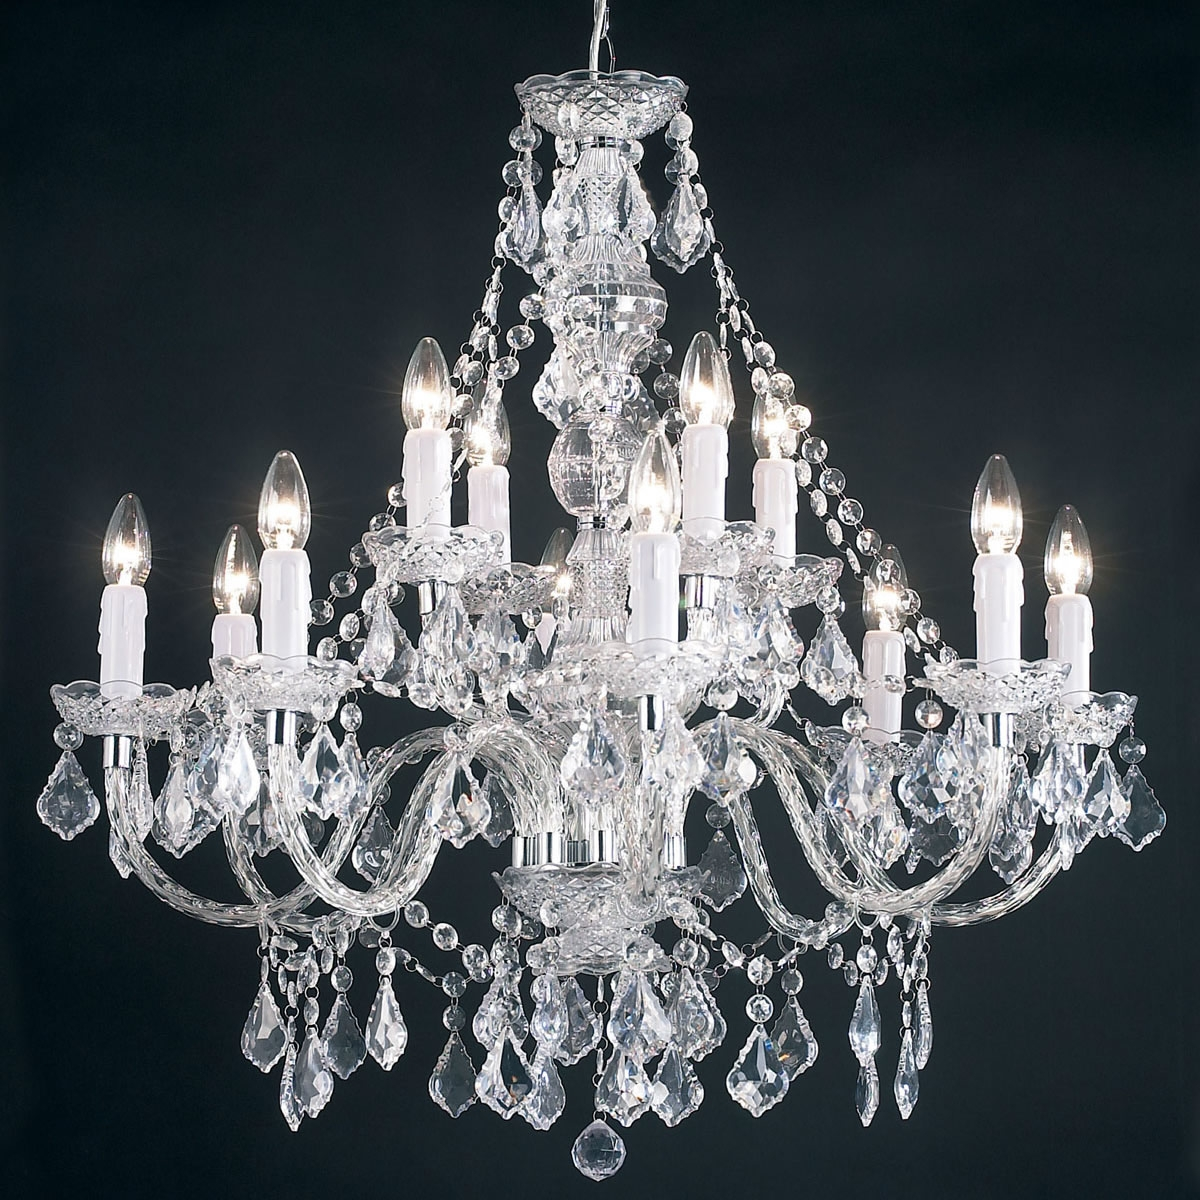 Endon Lighting 12 Light Chandelier In Clear Next Day Delivery In Endon Lighting Chandeliers (Image 10 of 25)